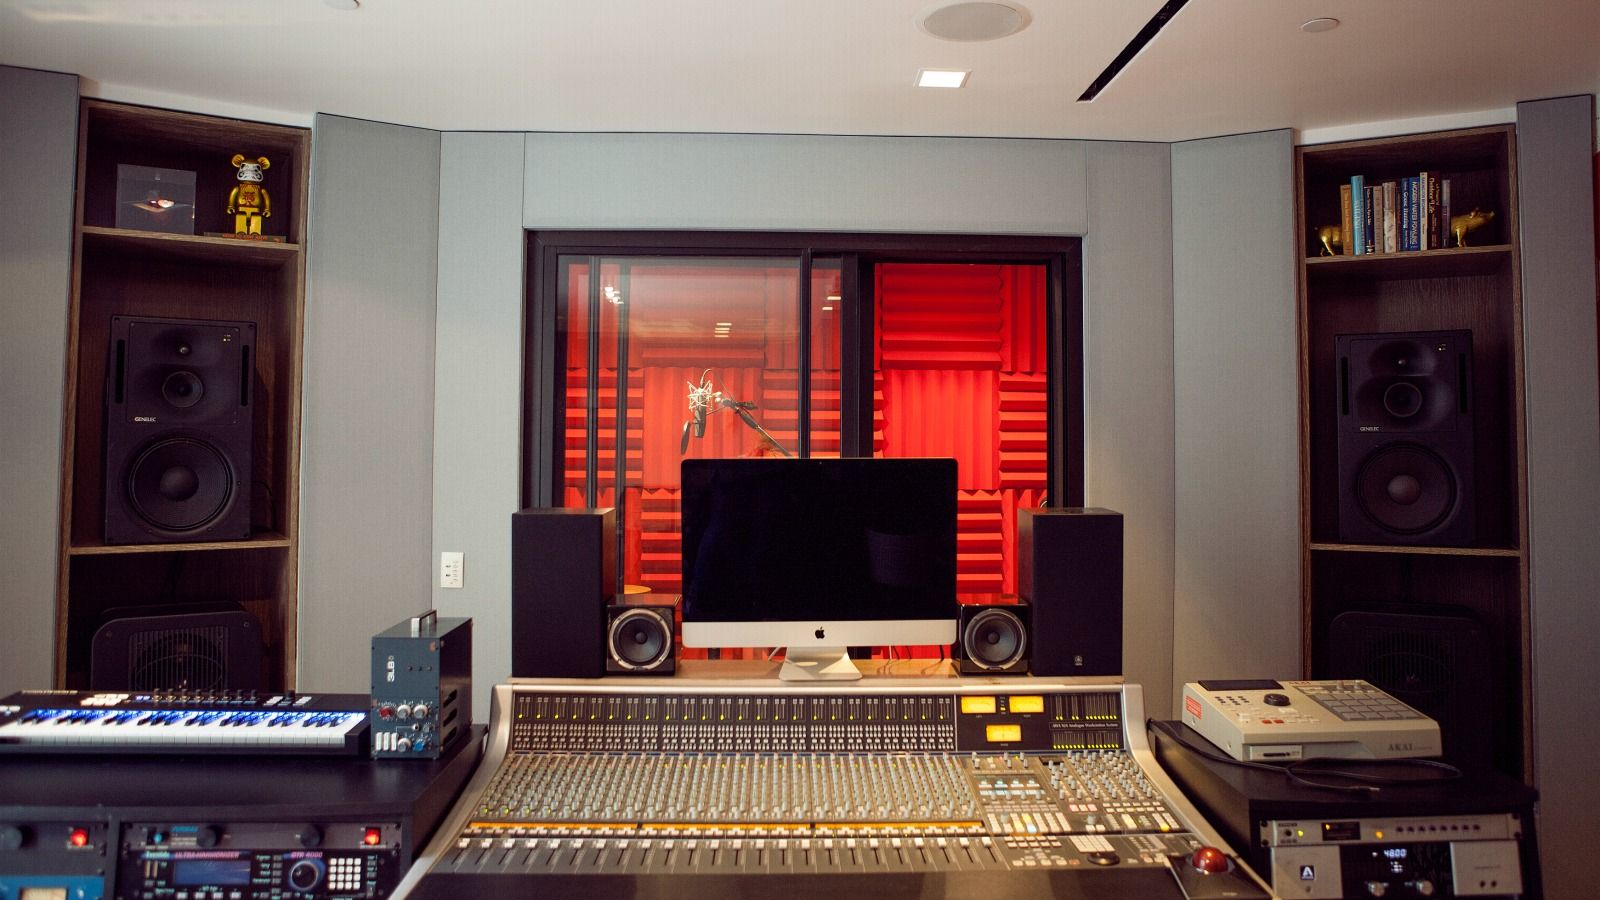 Soundbooth - W Sound Suite - W Hollywood